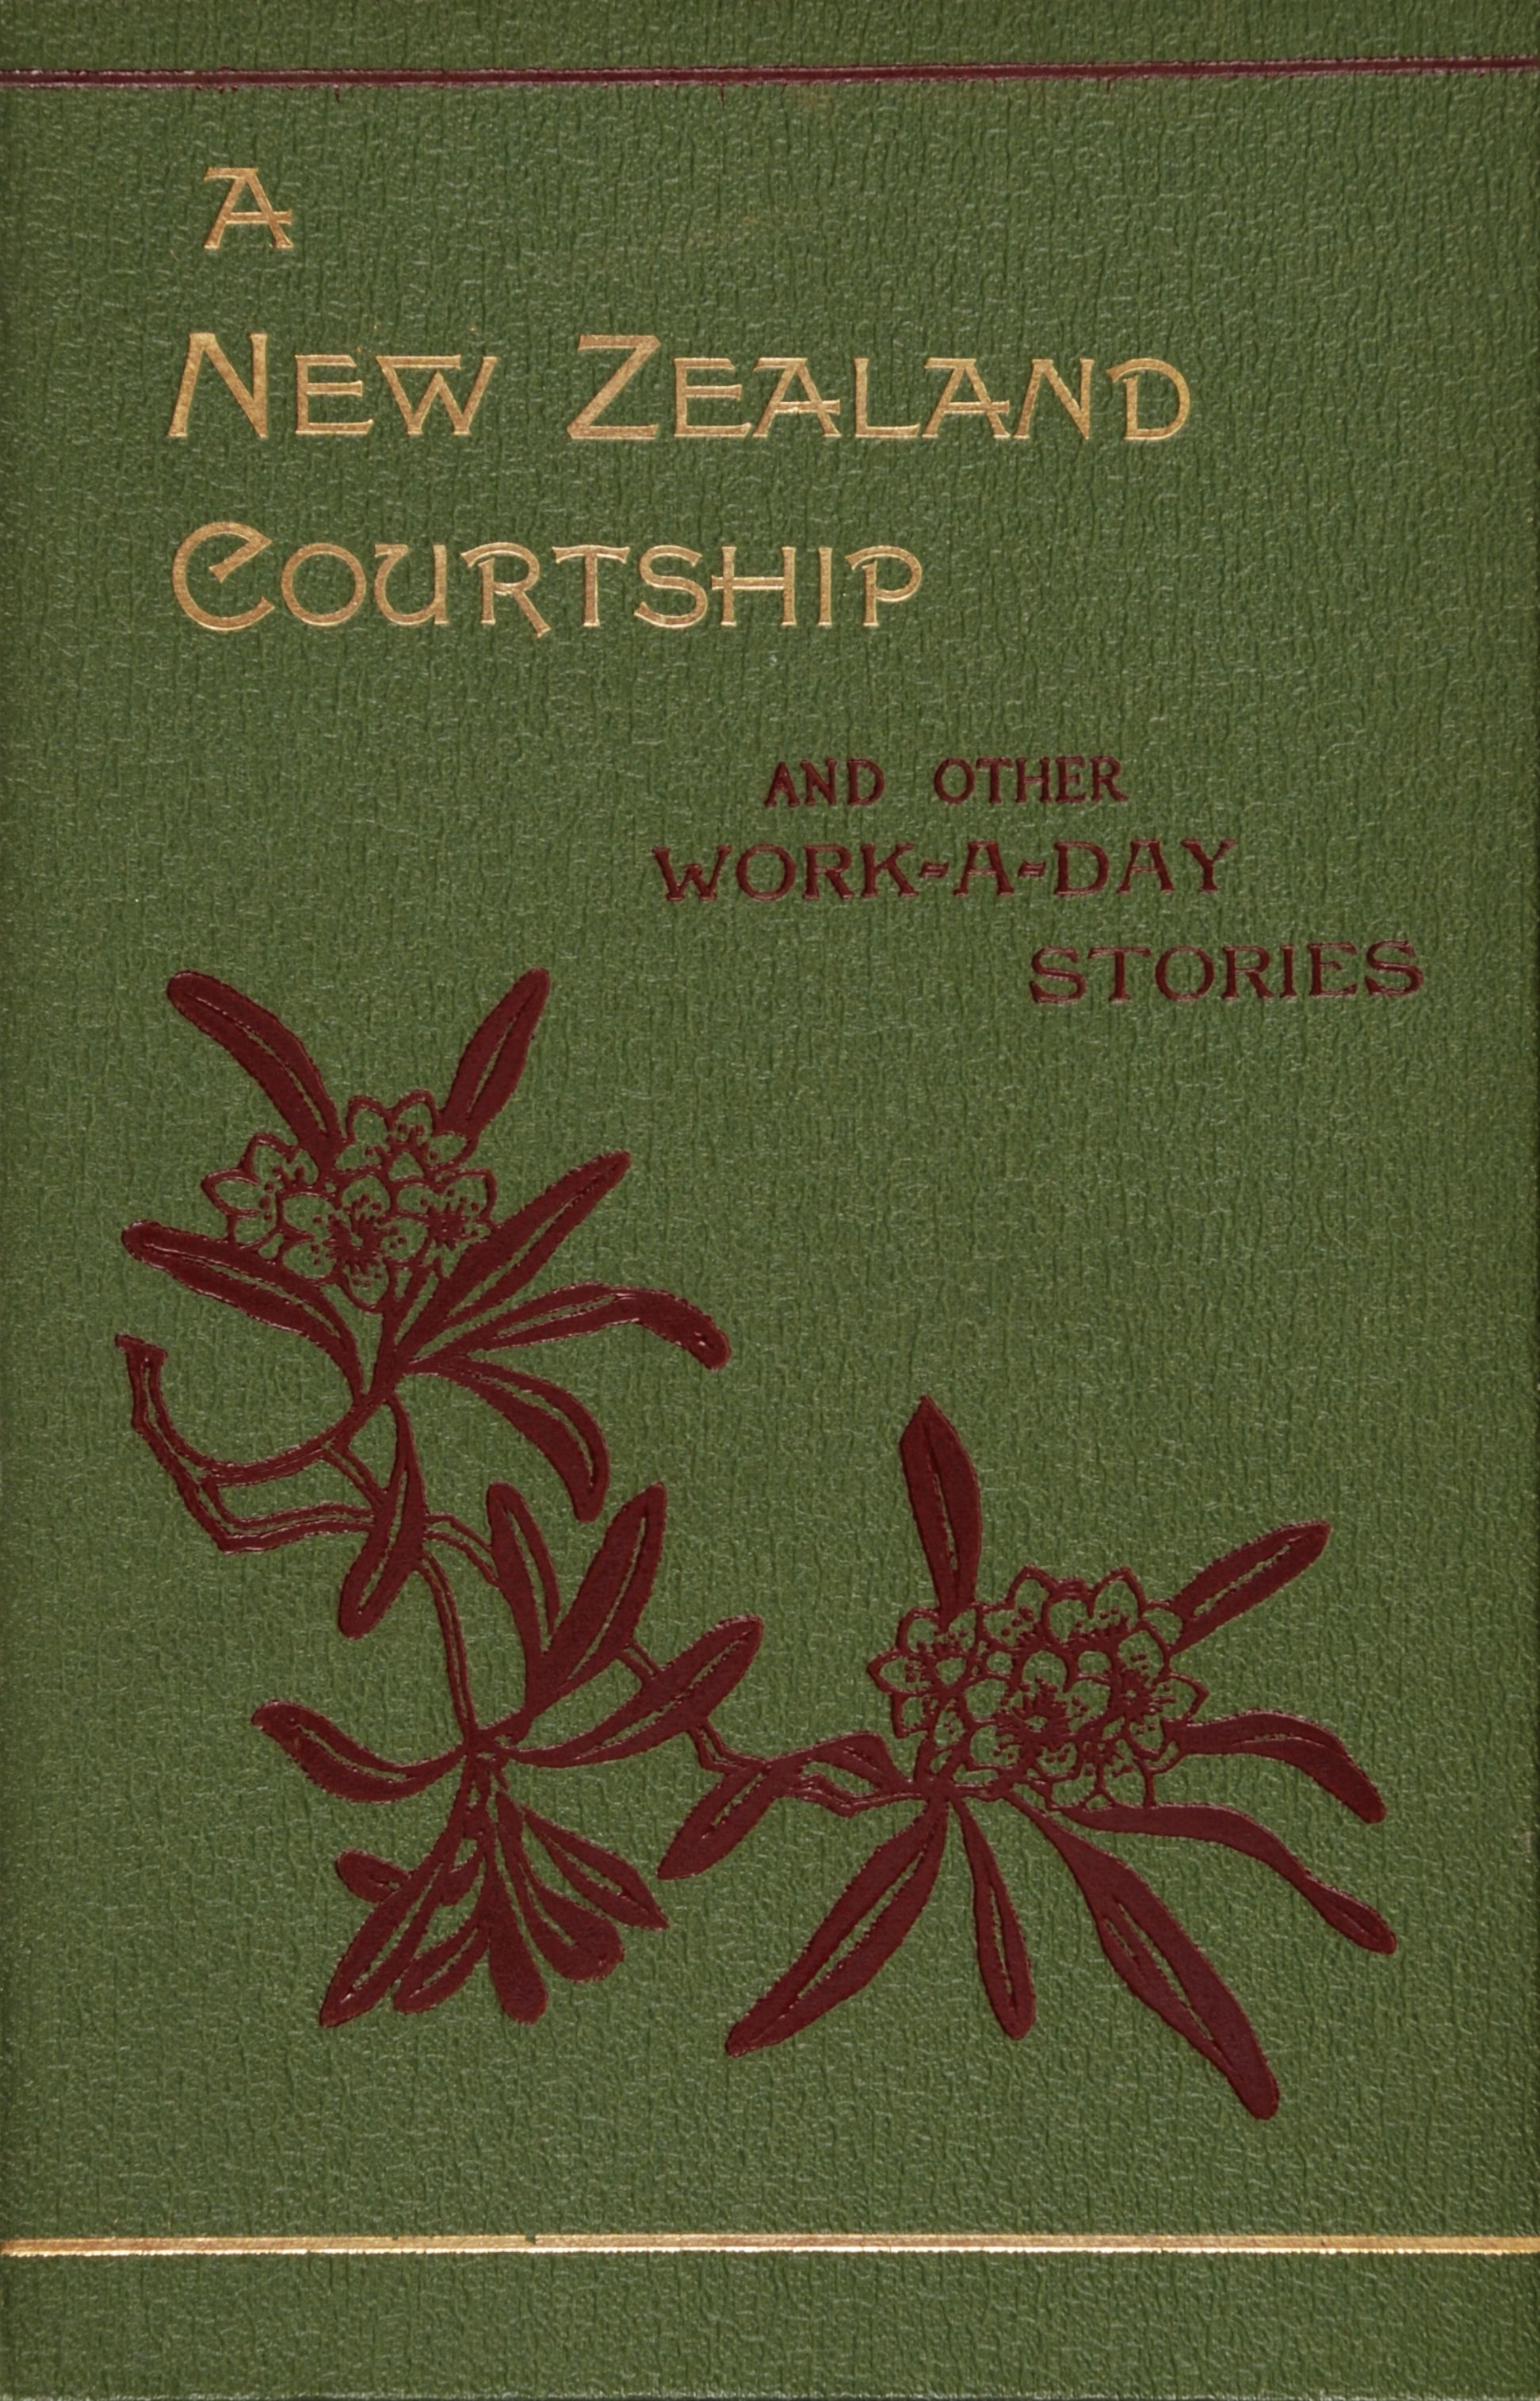 Elisabeth Boyd Bayly.  A New Zealand Courtship and Other Work-a-day Stories. London: Religious Tract Society, [1896].